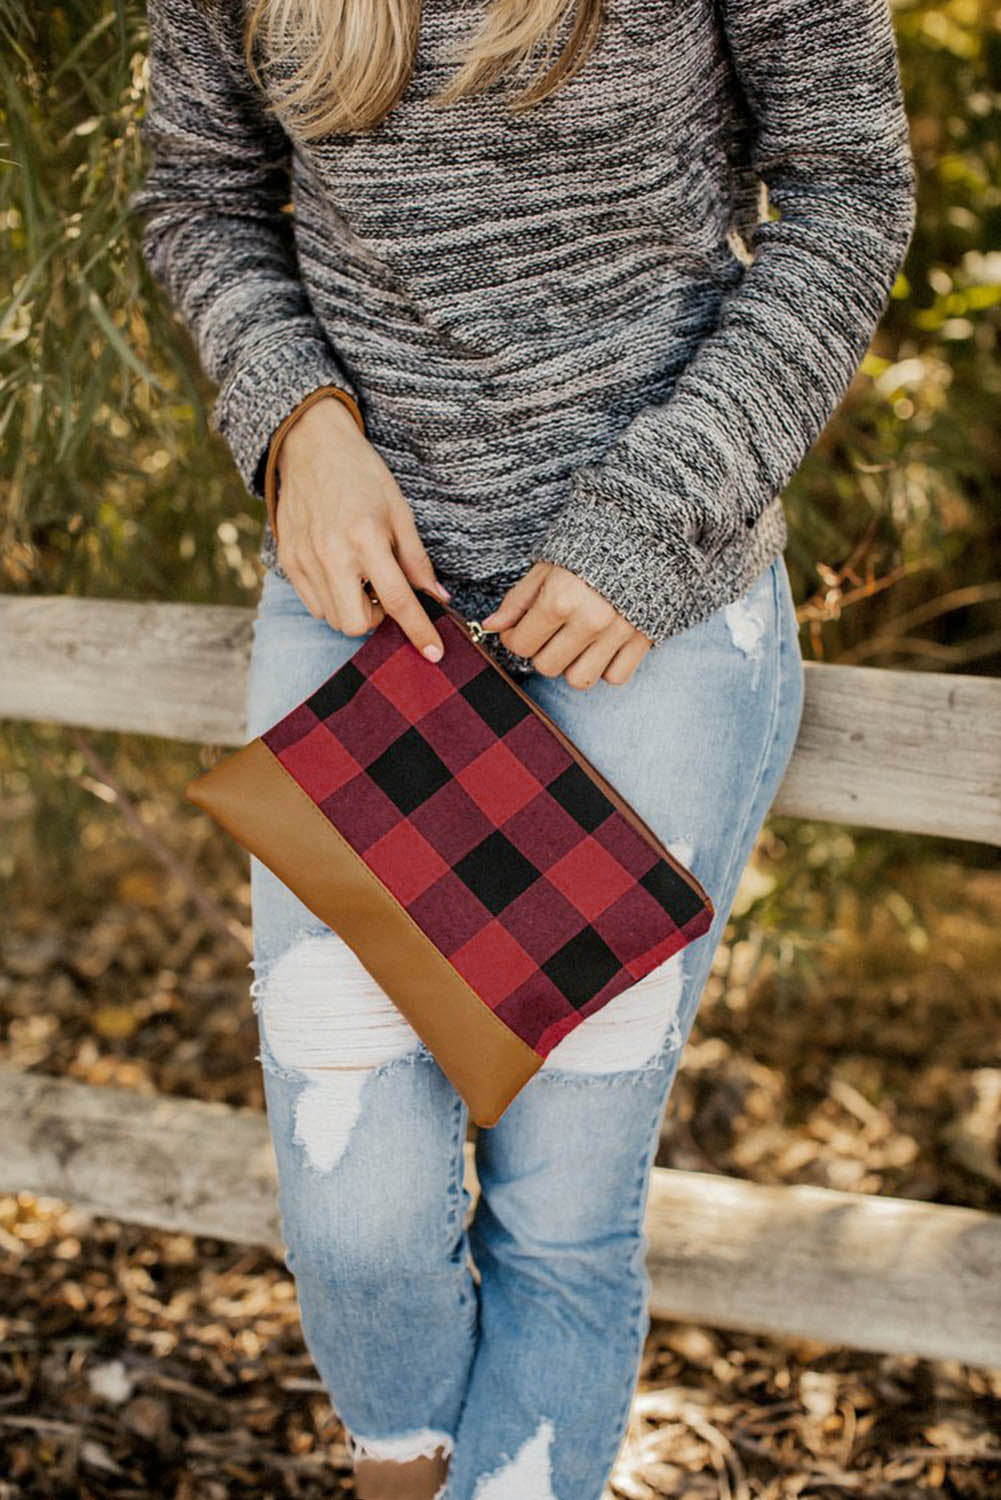 Red Plaid Print Clutch with PU Accent Bags Discount Designer Fashion Clothes Shoes Bags Women Men Kids Children Black Owned Business